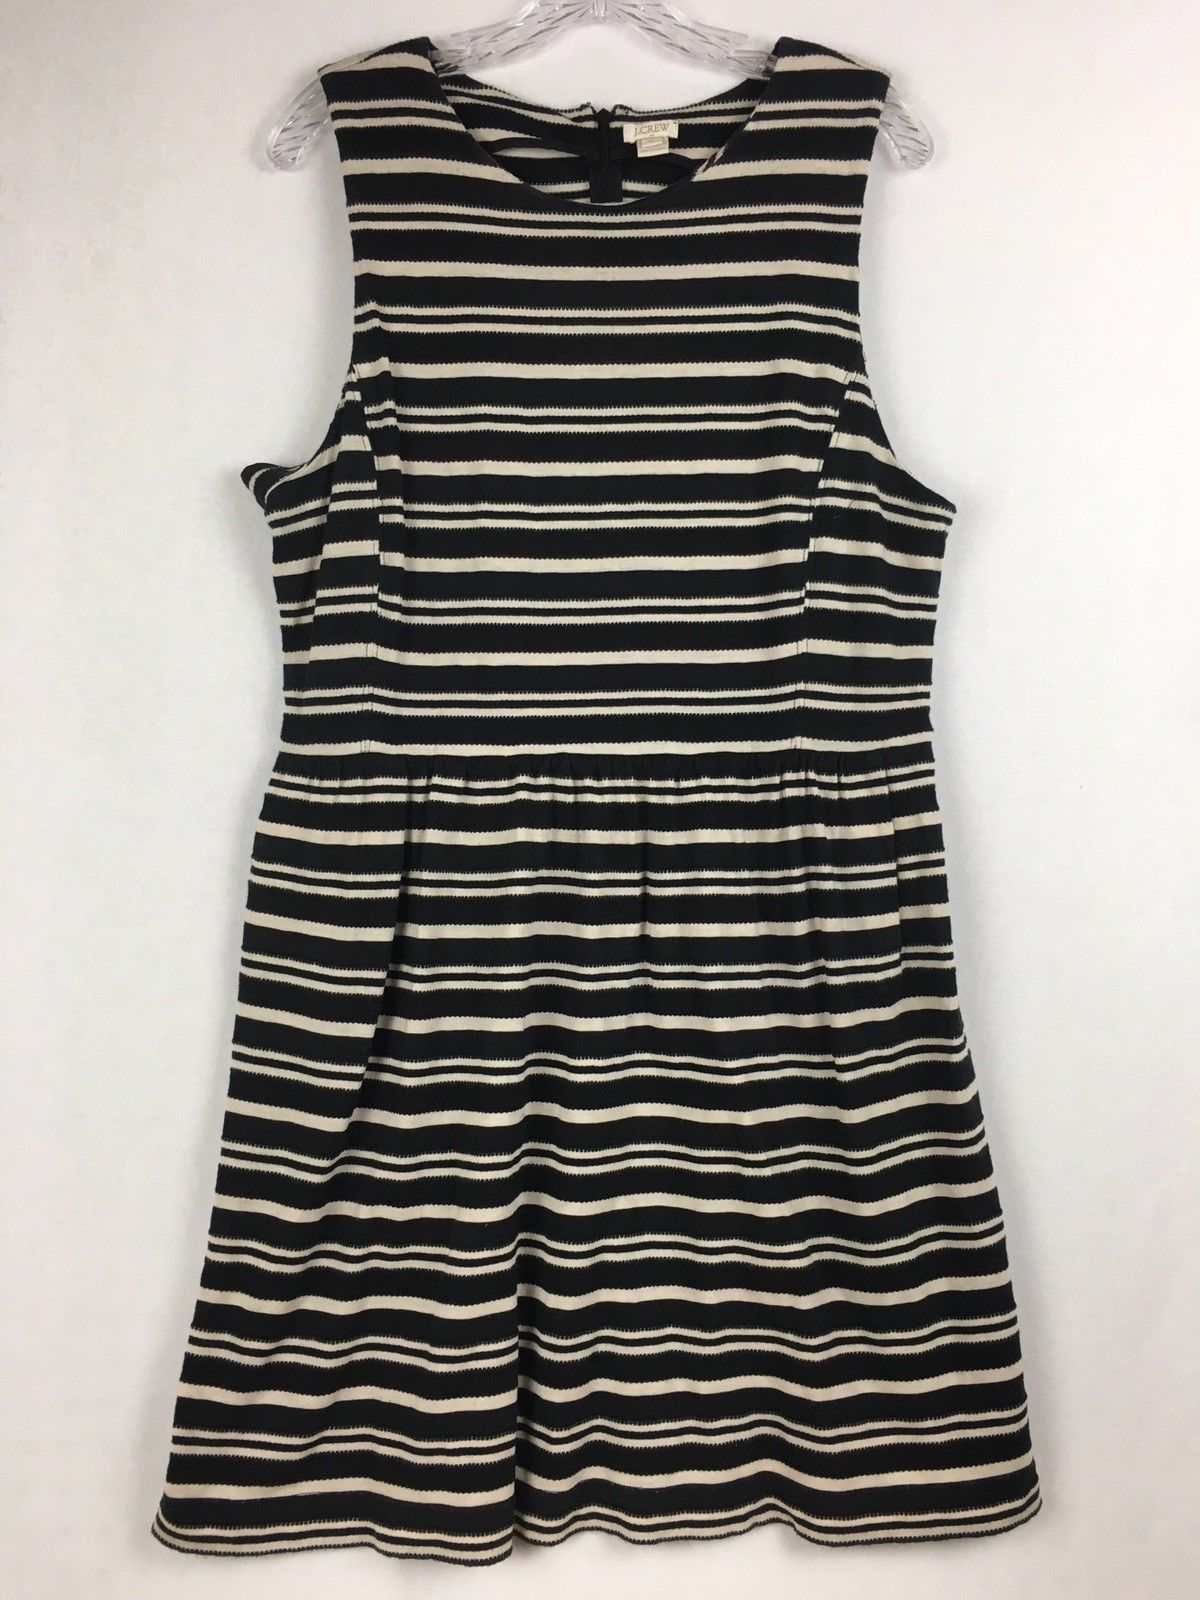 Primary image for J.Crew Factory Sleeveless Scoopneck Black & Beige Striped Midi Dress Size XL